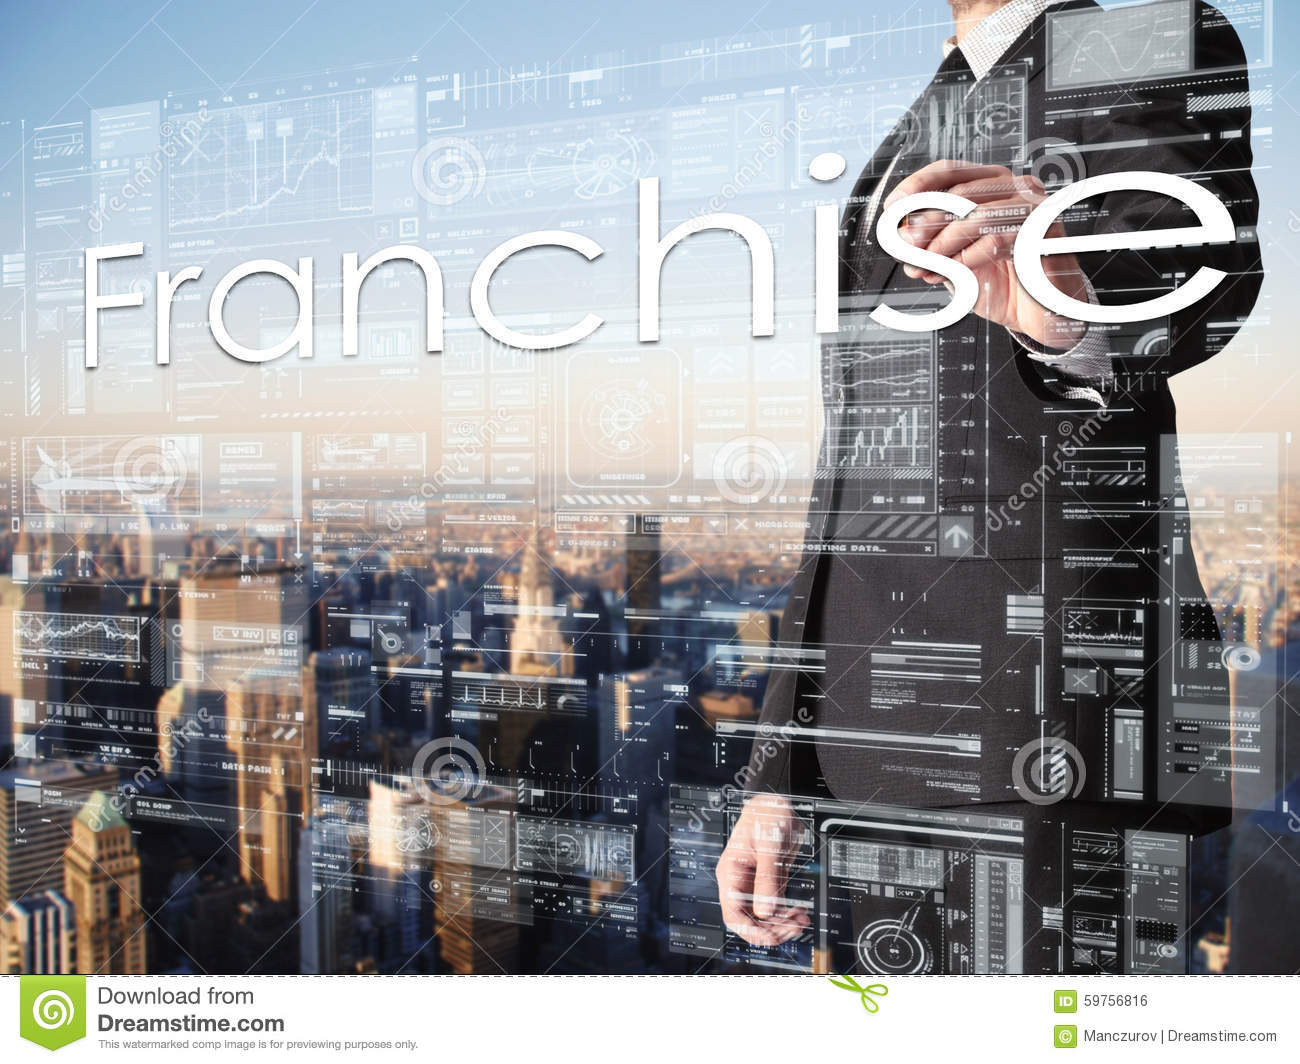 franchise essay This essay is discussing about the advantages and disadvantages of a small business owner in new zealand when they choose franchise as a business o.